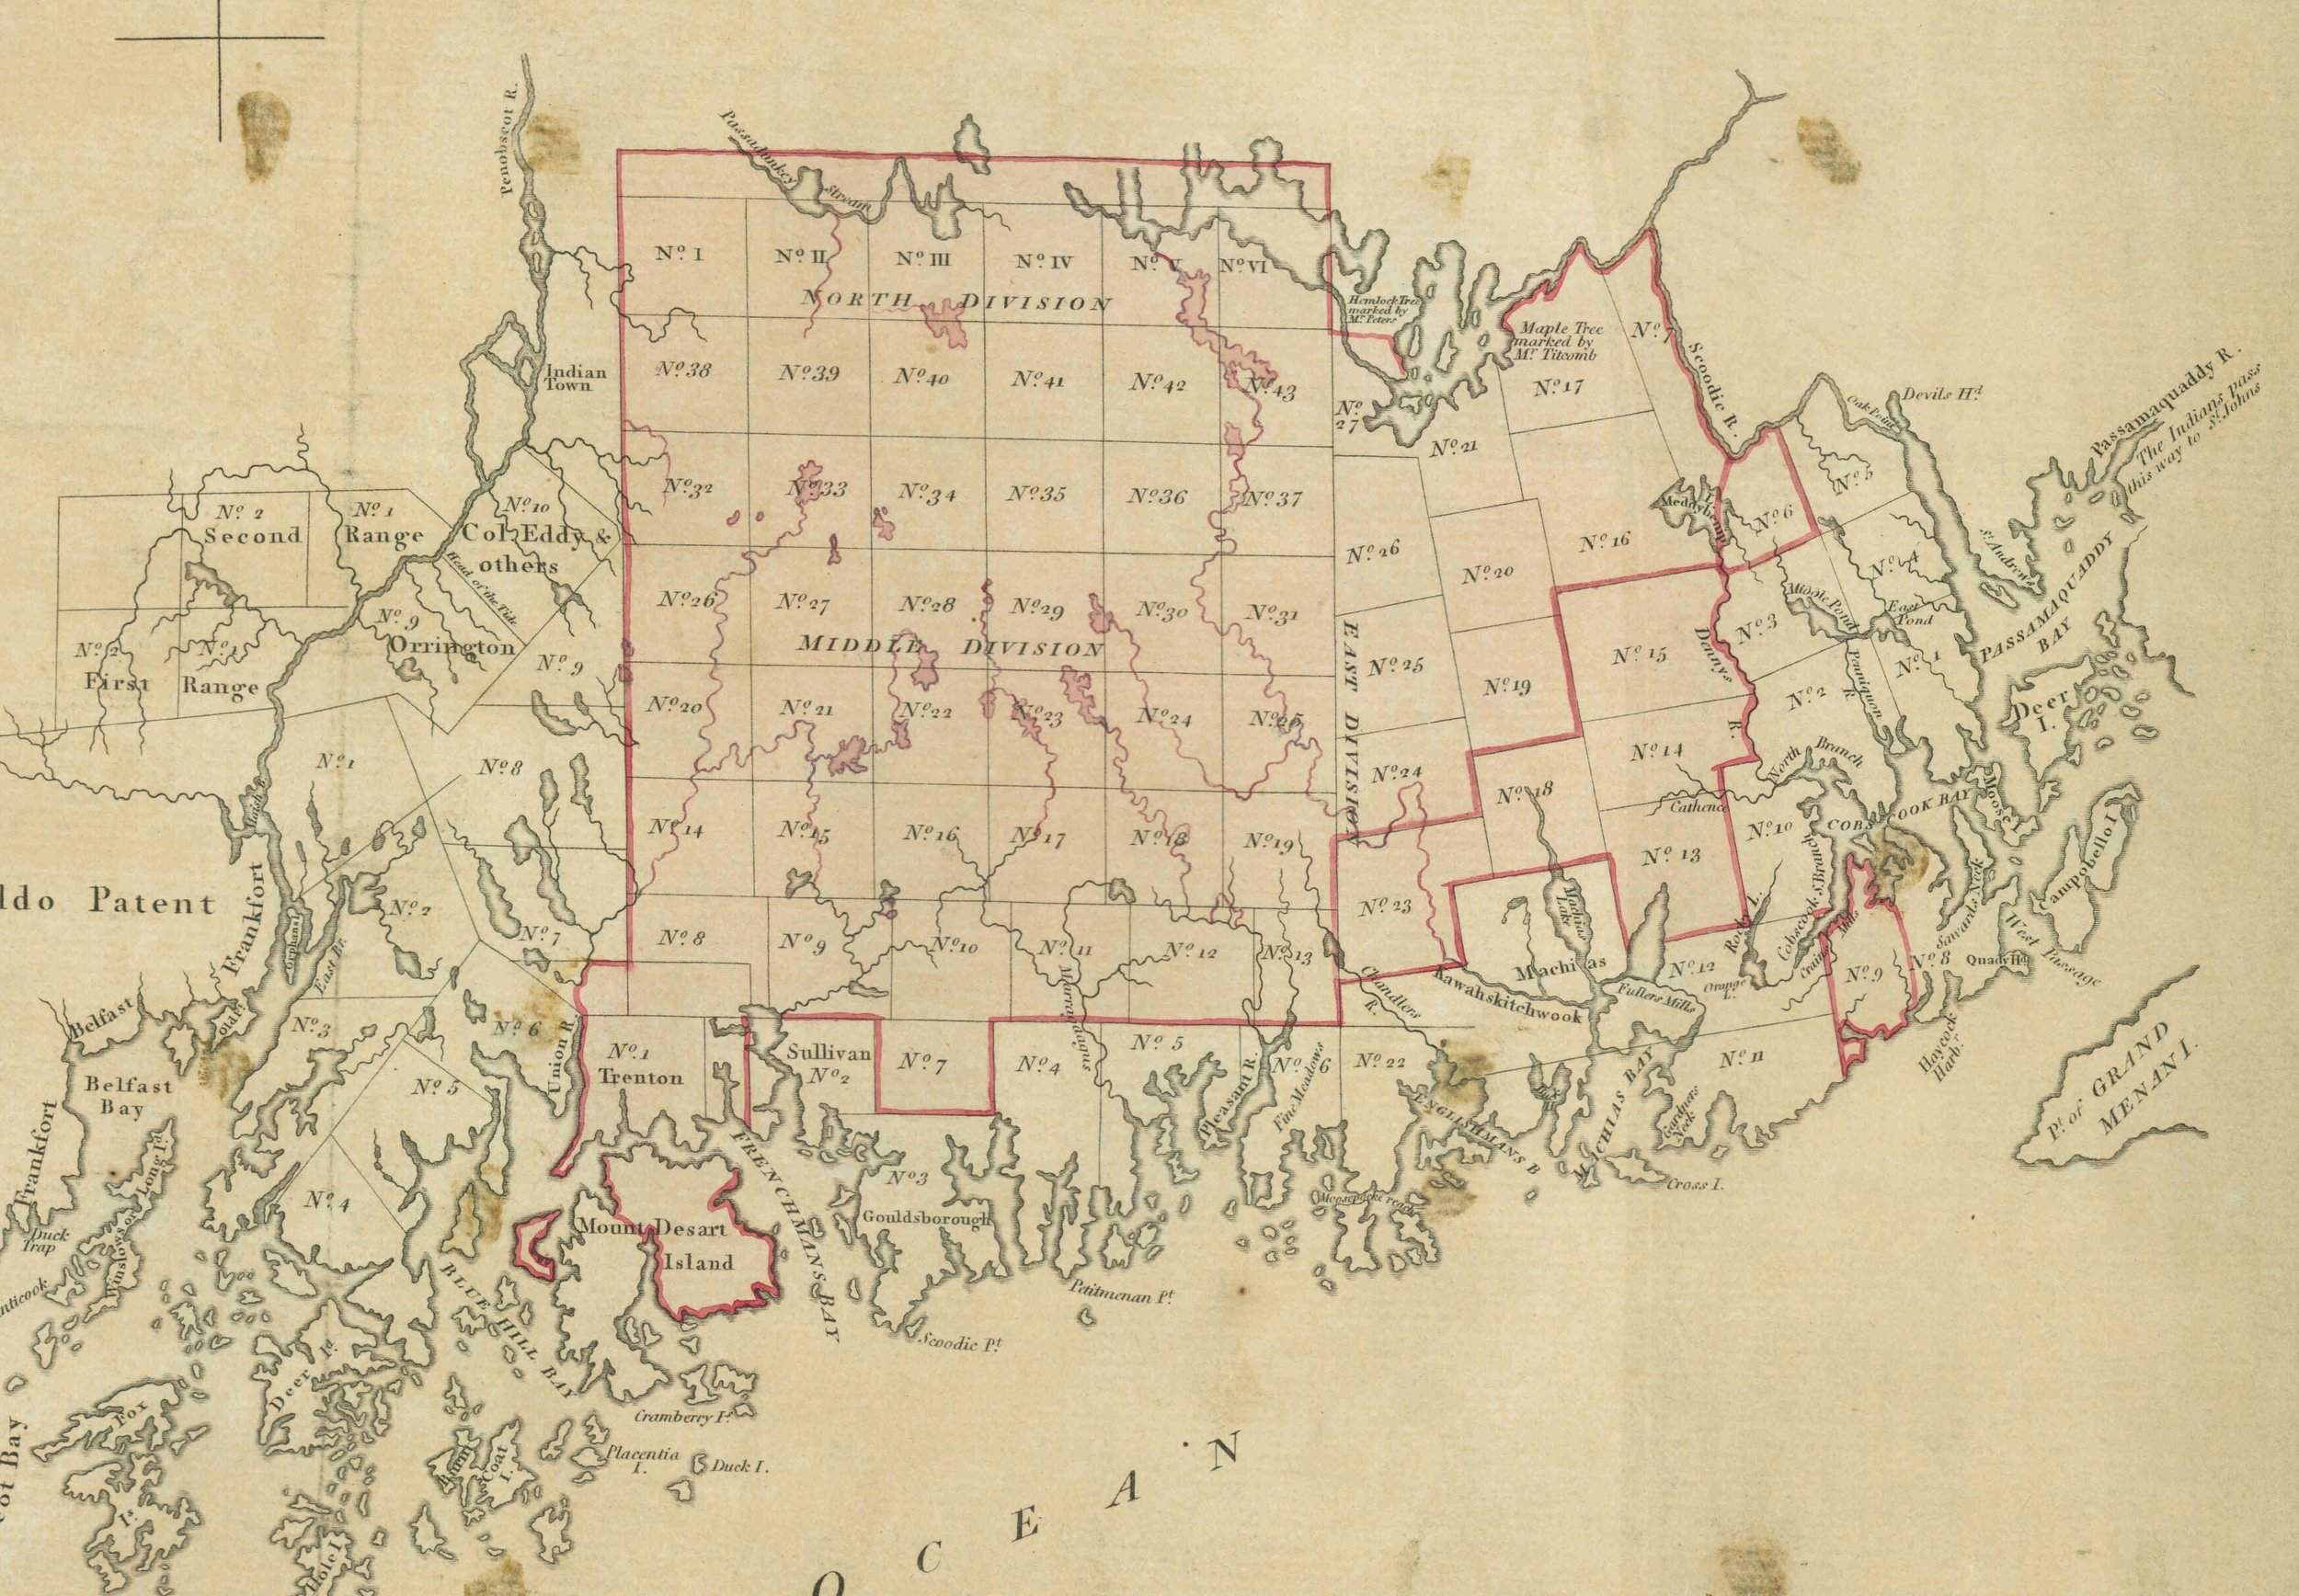 Fig. 9. Detail of the Penobscot Purchase on  Plan of Part of the District of Main  (n.p, n.d.). See fig. 1. Courtesy of the Geography and Map Division, Library of Congress.